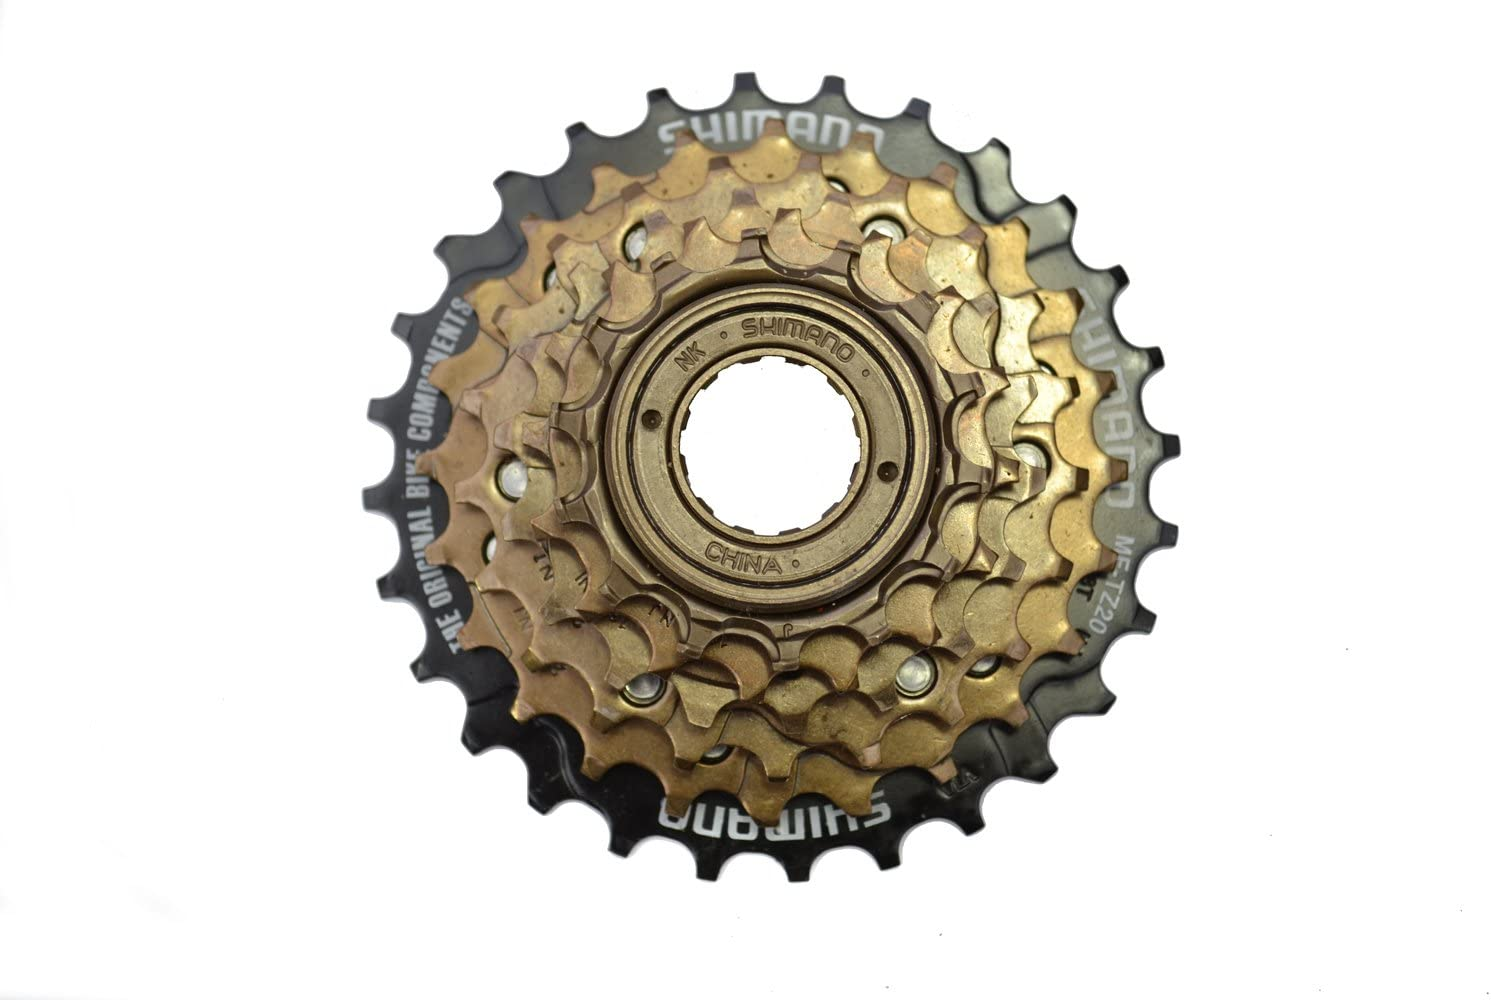 NEW MF-TZ20 14-28 Shimano 6-Speed Freewheel